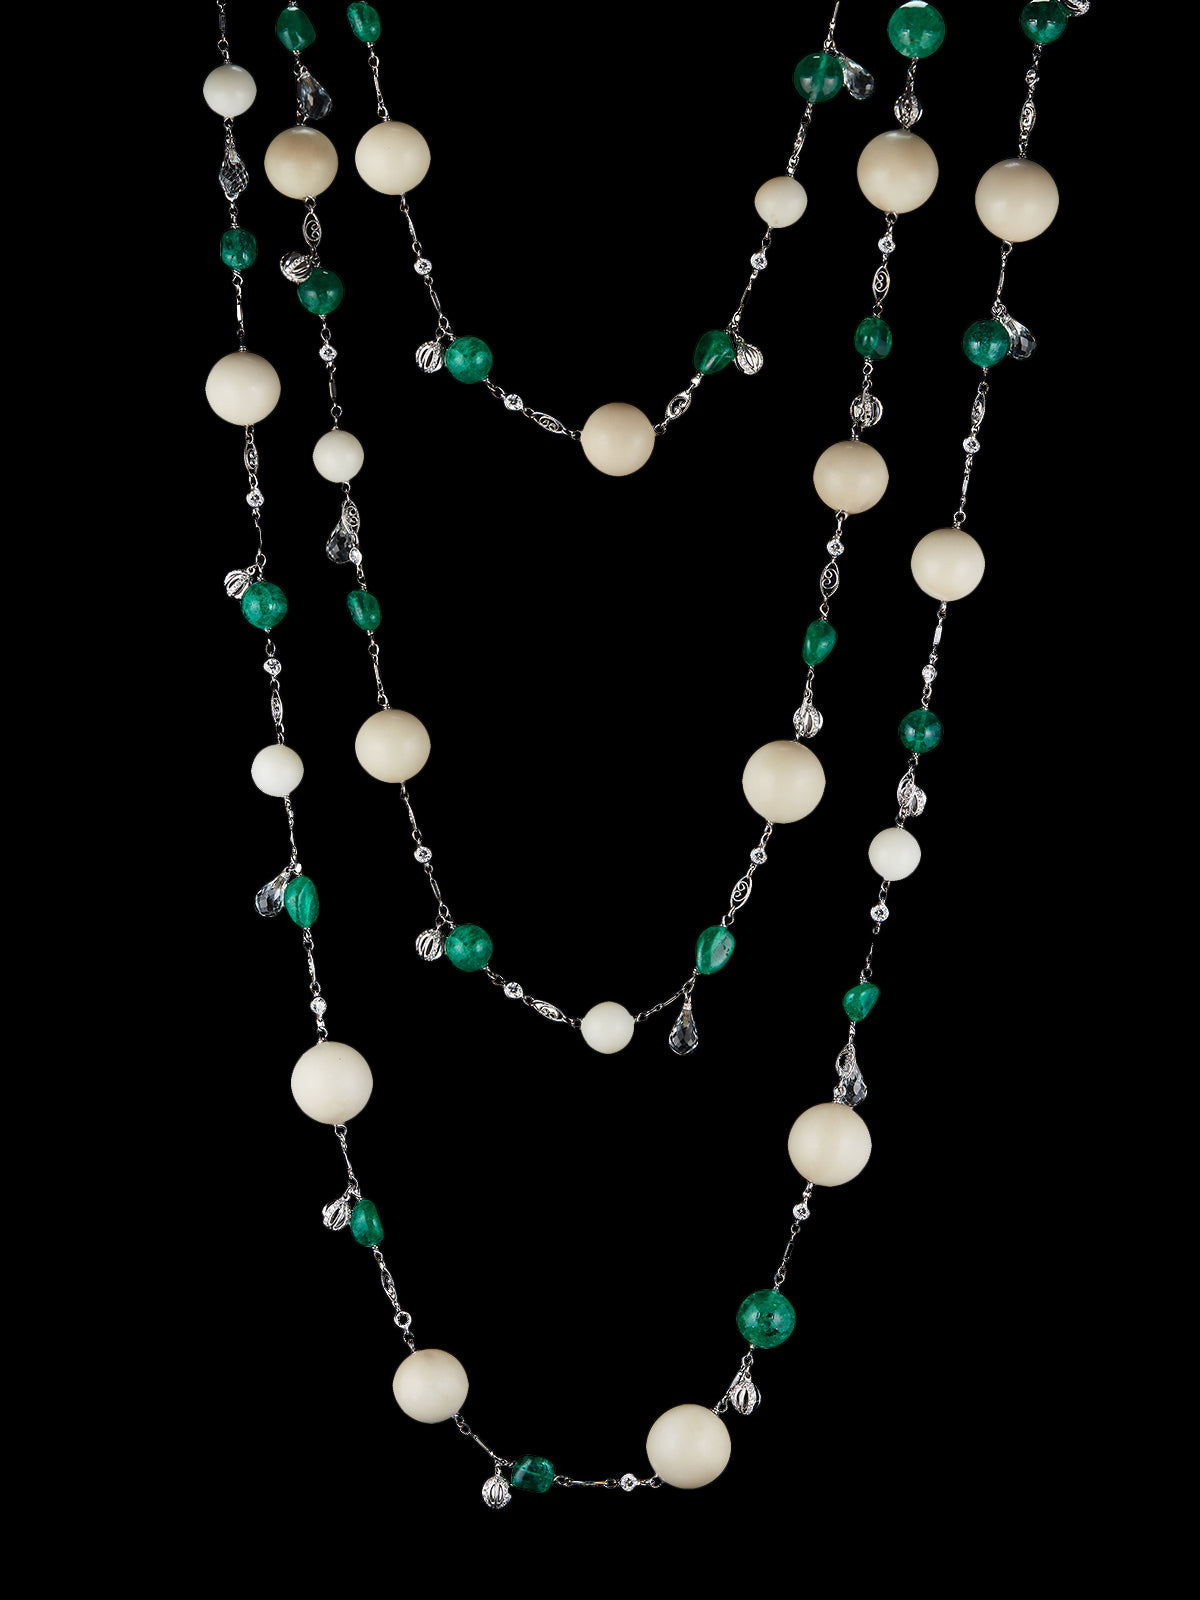 Tagua and Emerald Bead Sautoir Necklace Tagua and Emerald Bead Sautoir Necklace